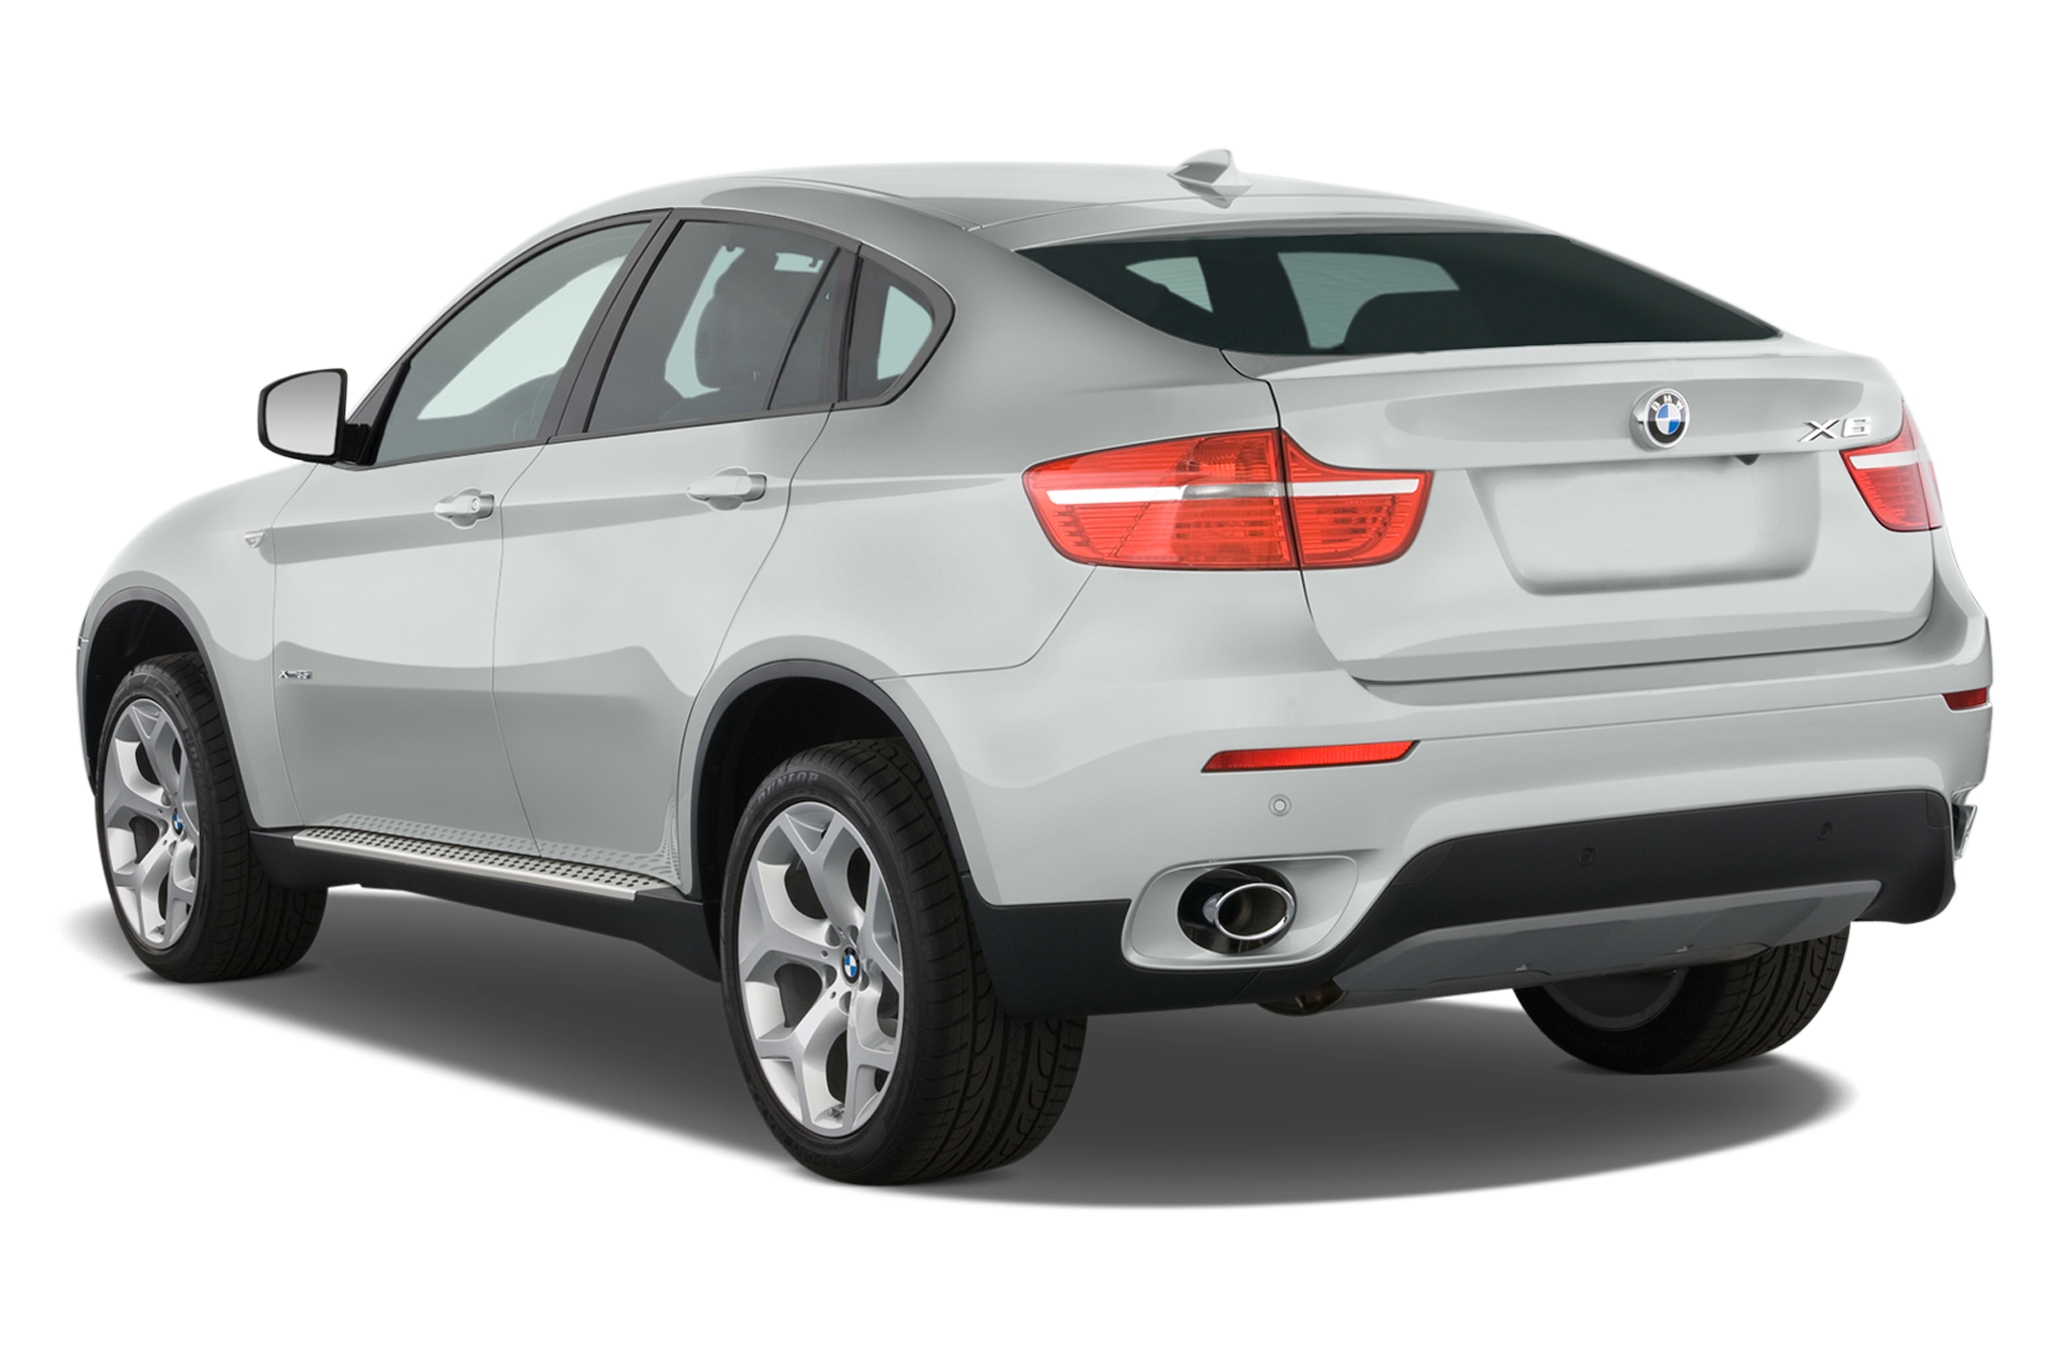 bmw x6 v6 bmw x6 review 2017 autocar new 2015 bmw x6 full review youtube 2010 bmw x5 m and. Black Bedroom Furniture Sets. Home Design Ideas